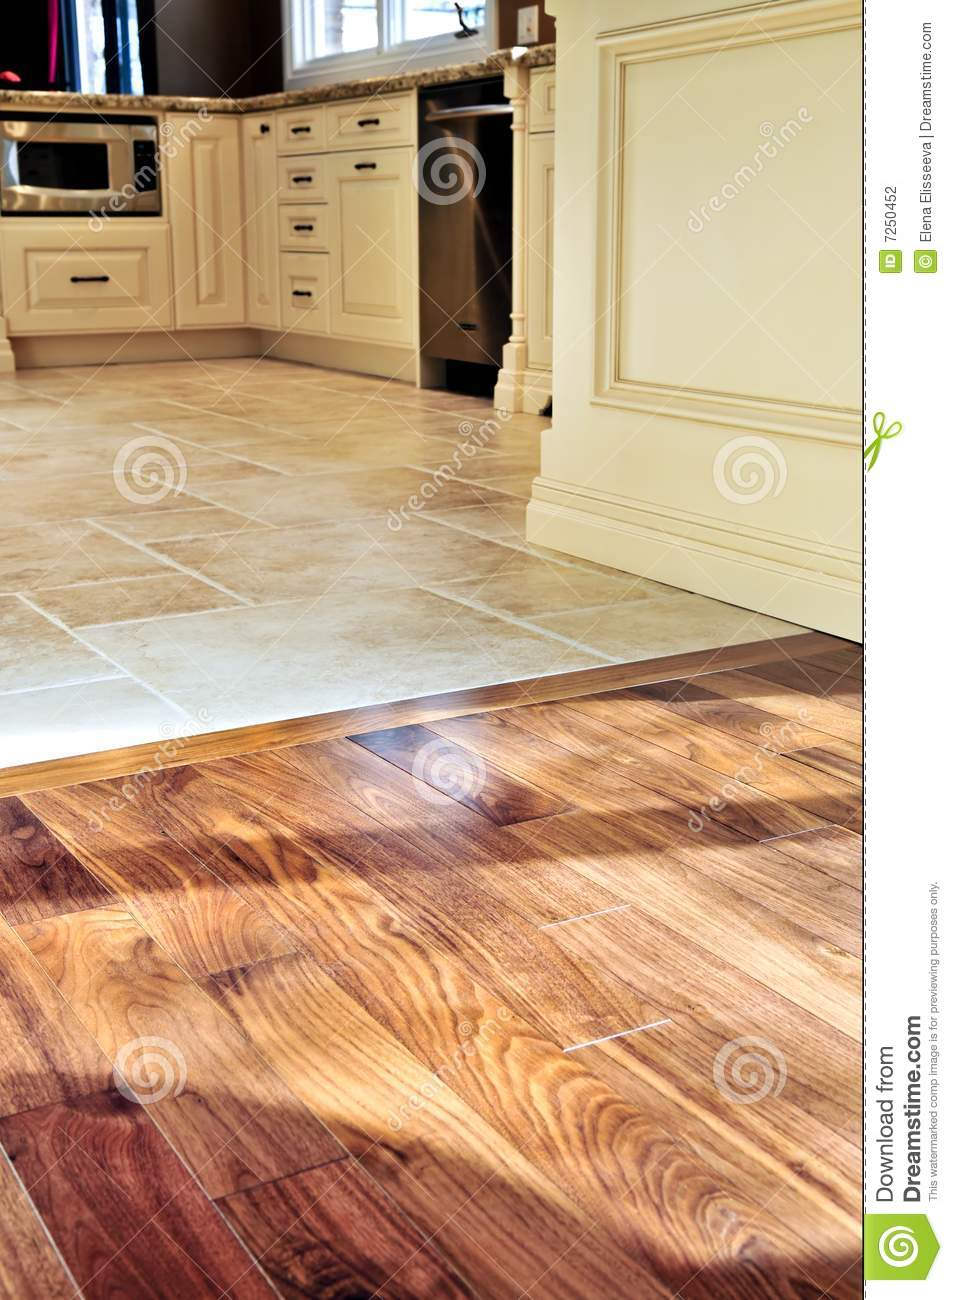 Hardwood and tile floor stock photography image 7250452 for Tile and hardwood floor